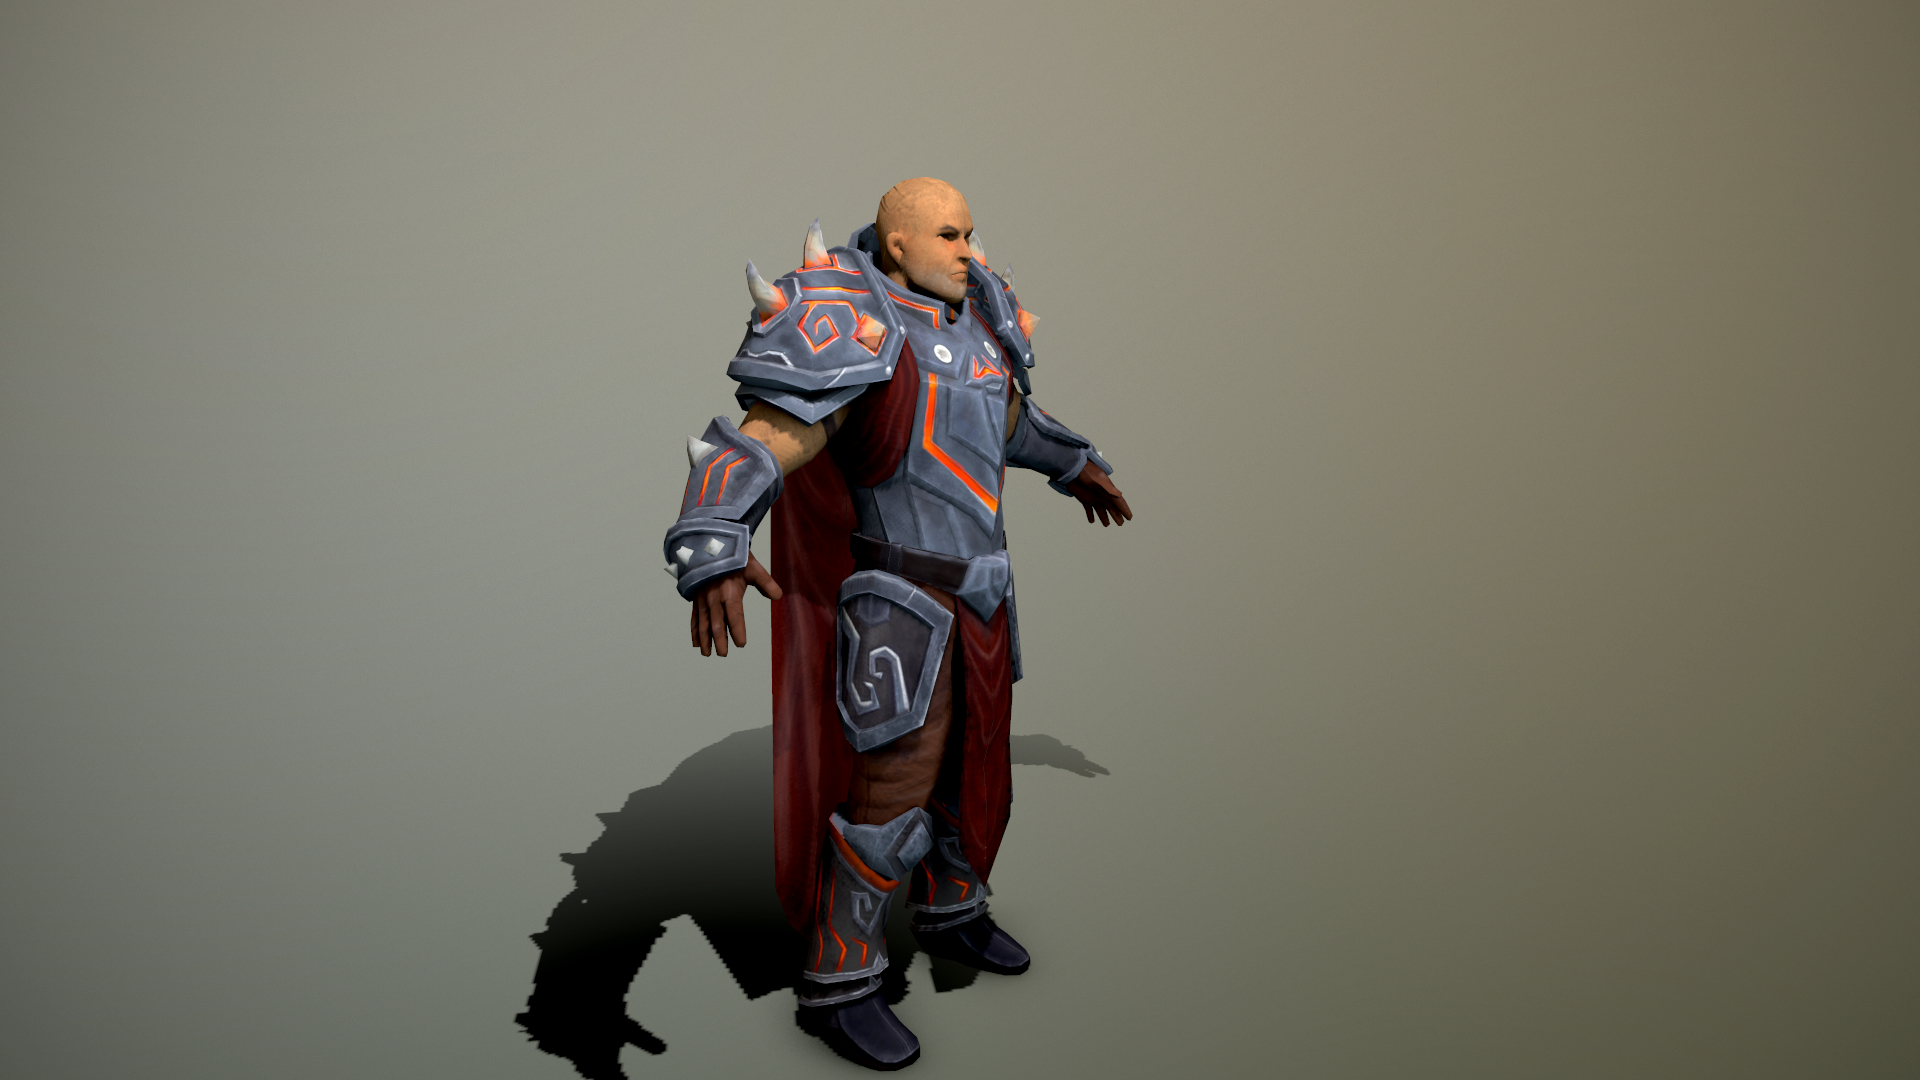 Darius in 3d max Other image